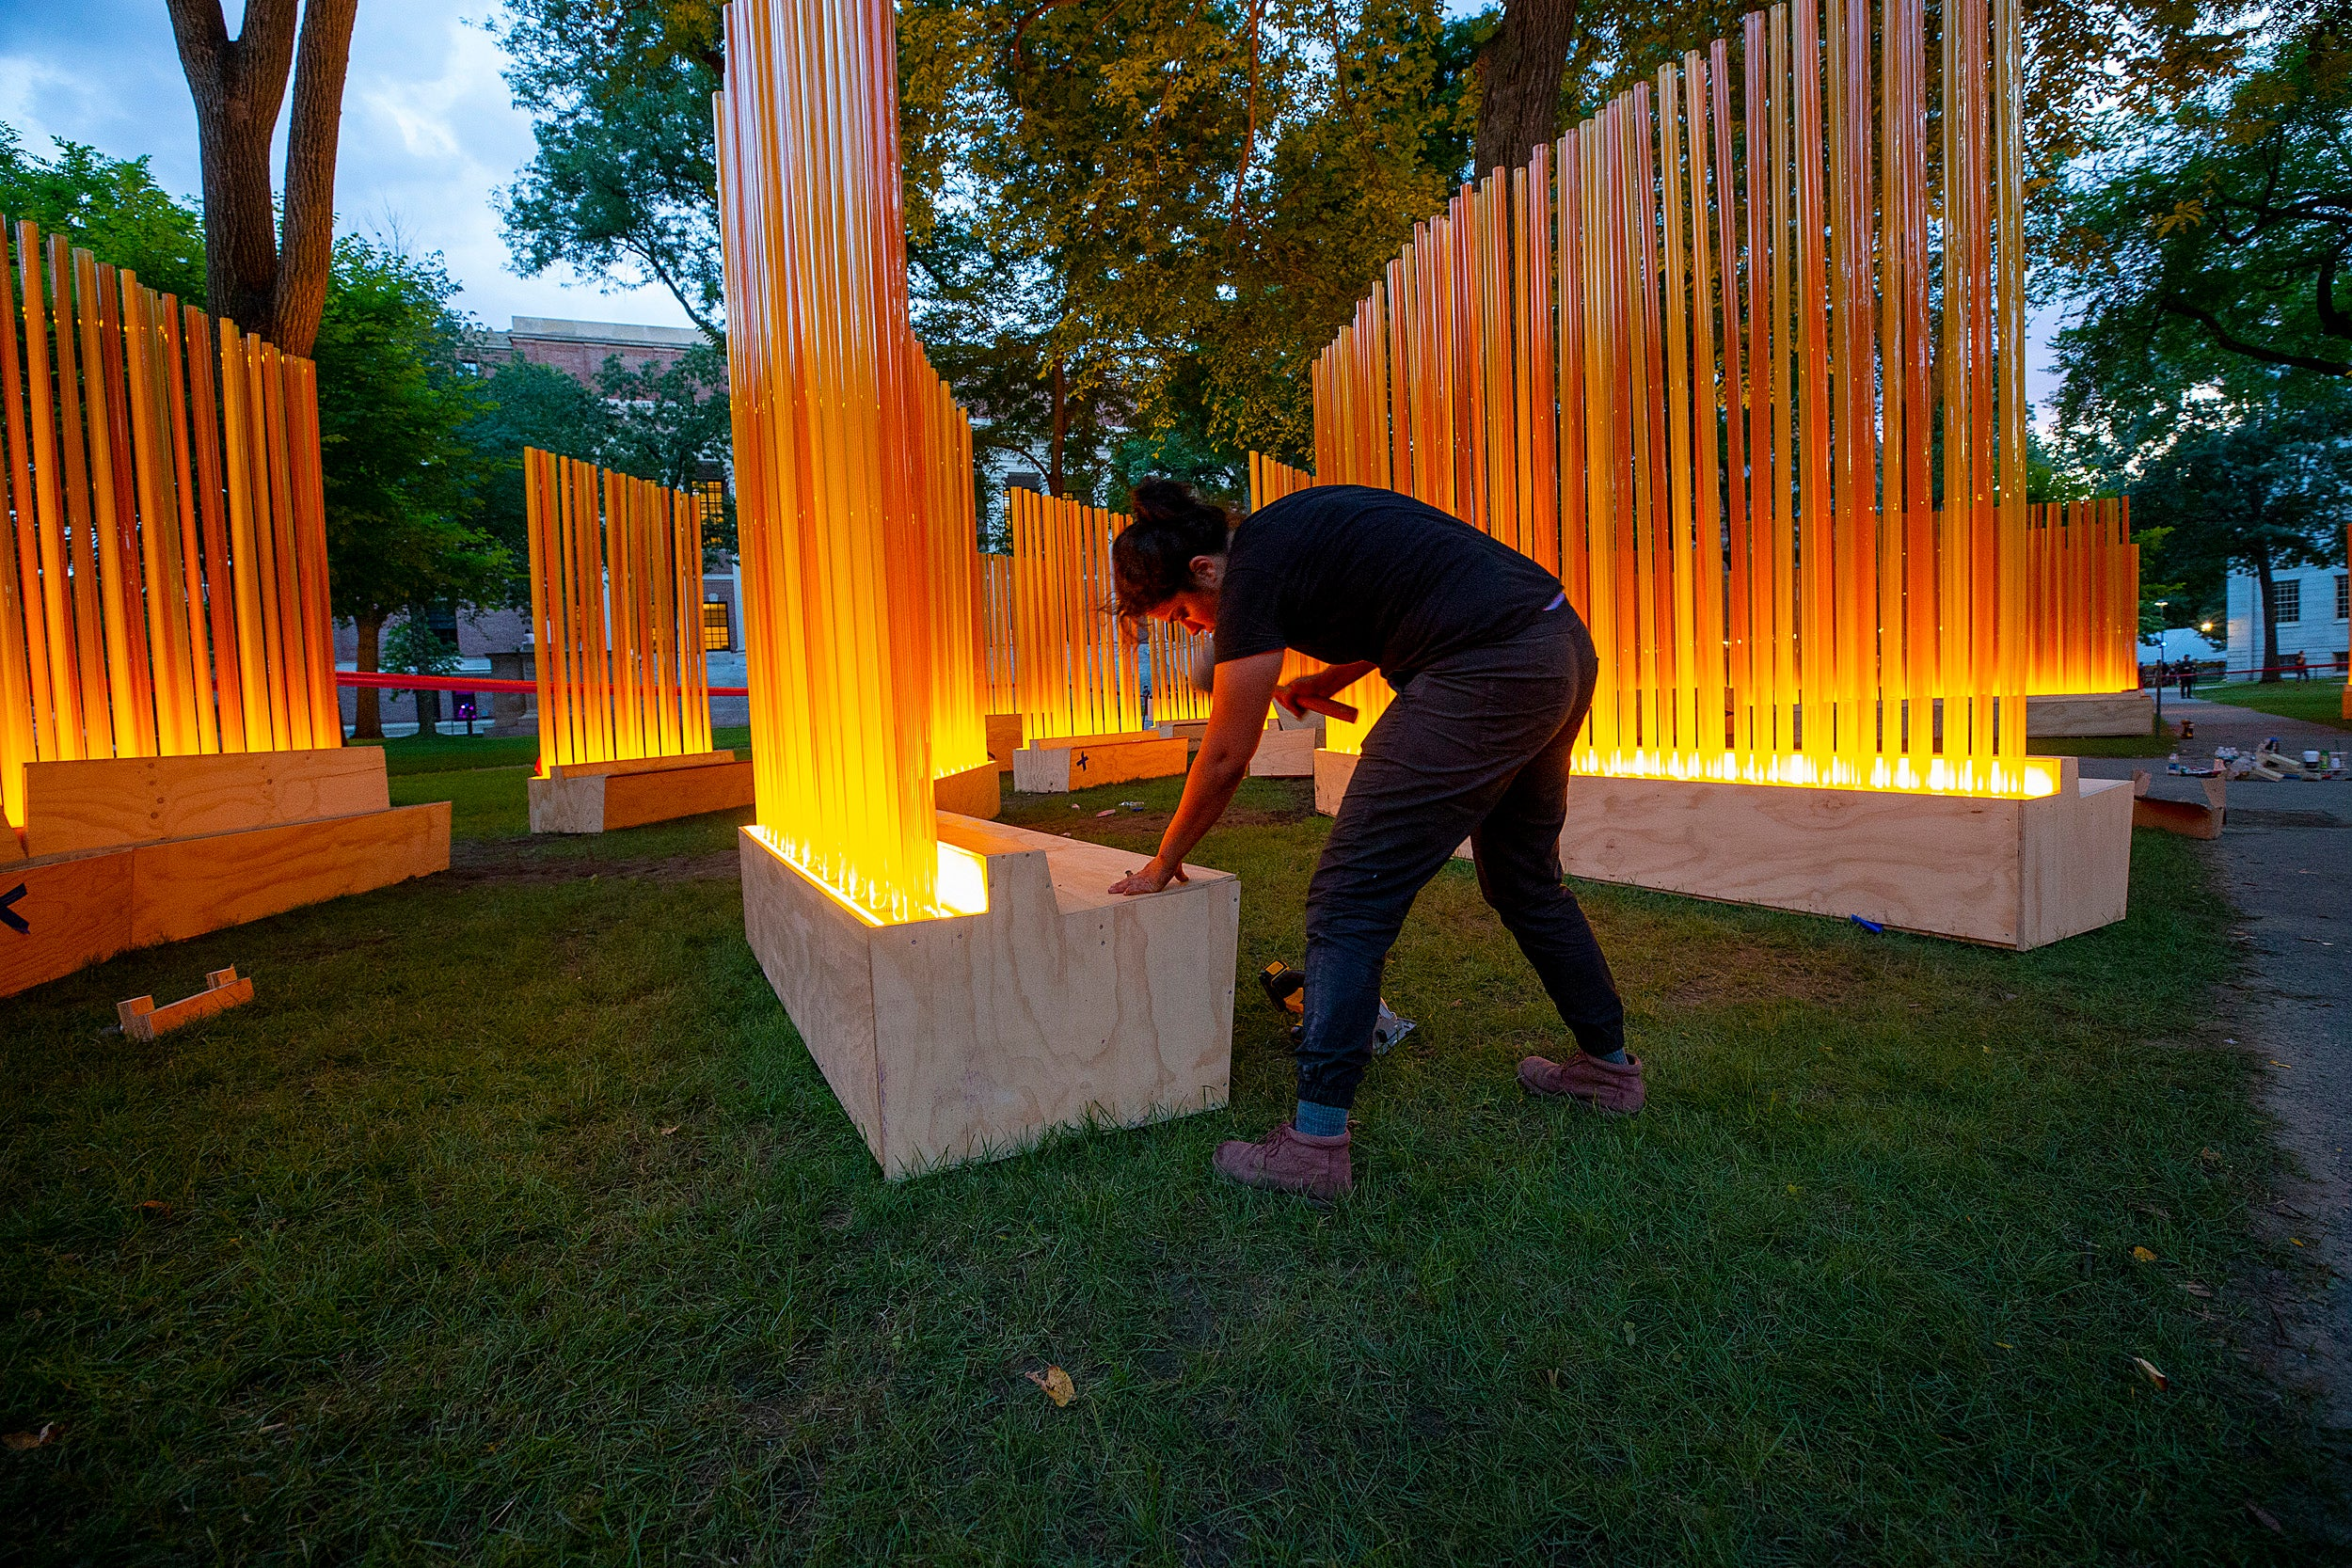 A woman putting the art installation together